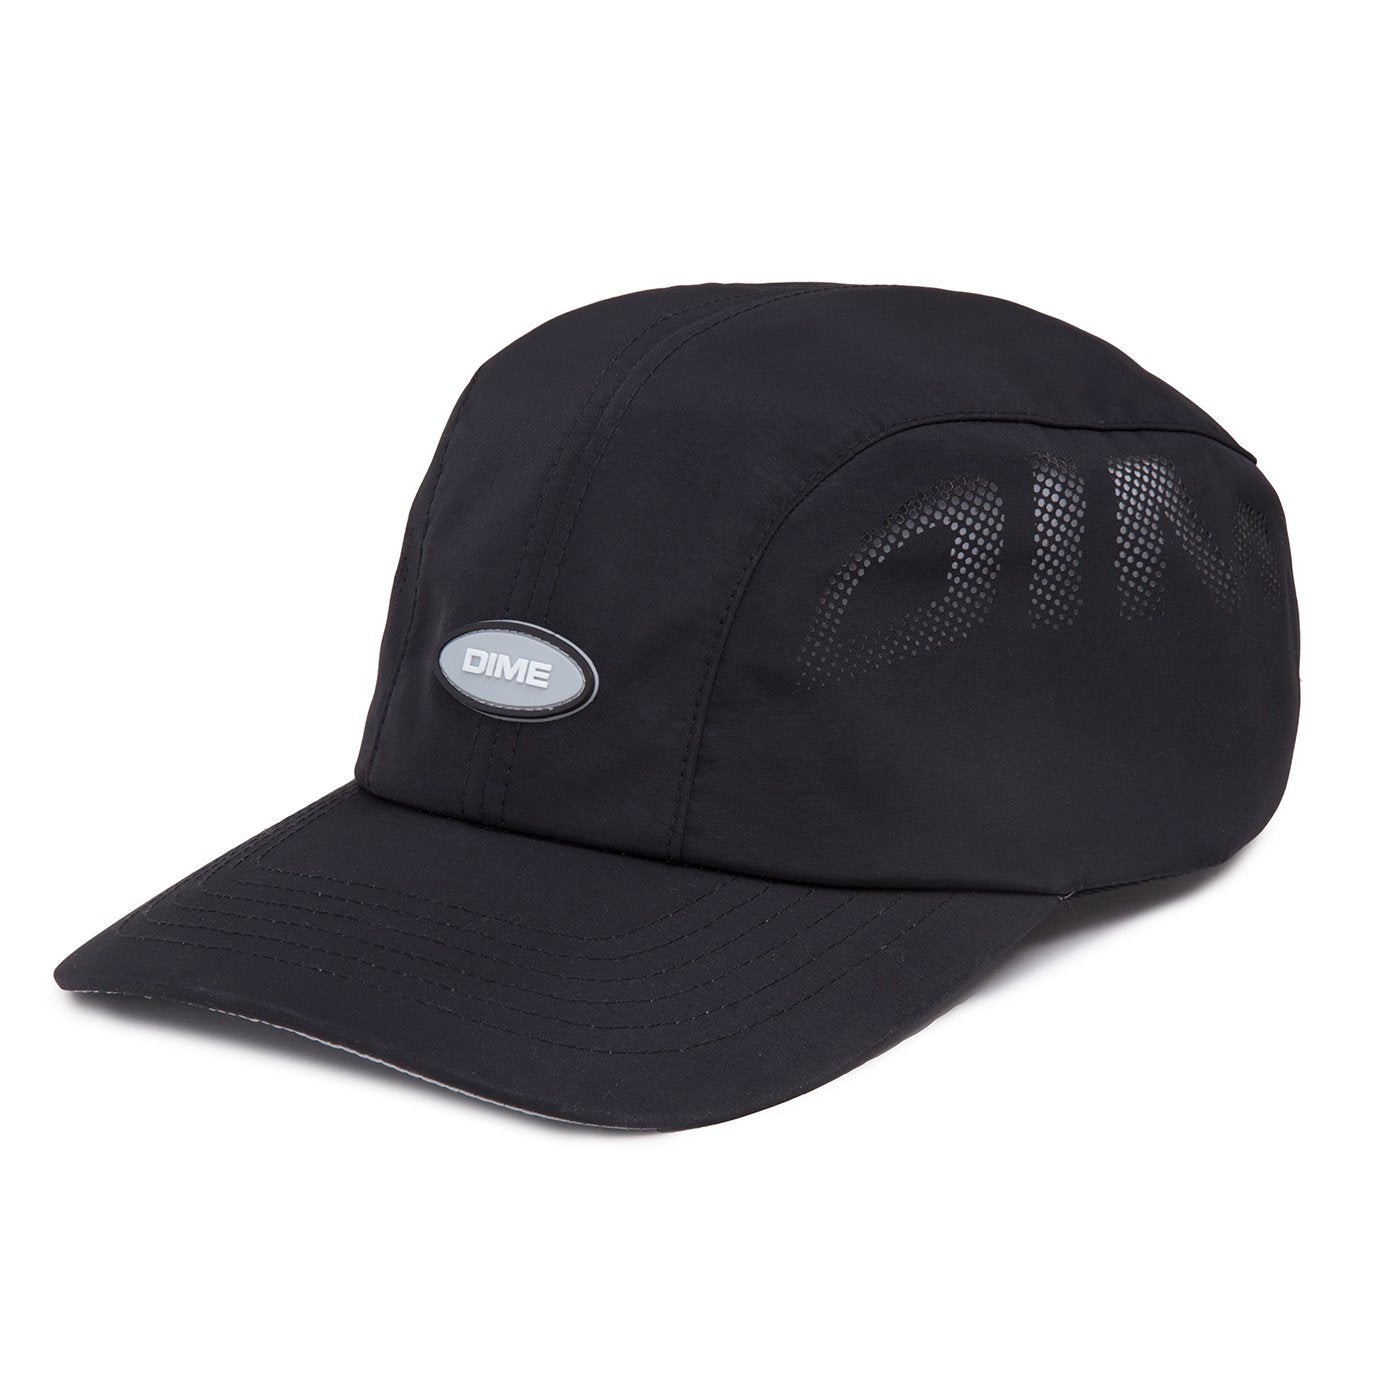 Dime Perf Cap Product Photo #1